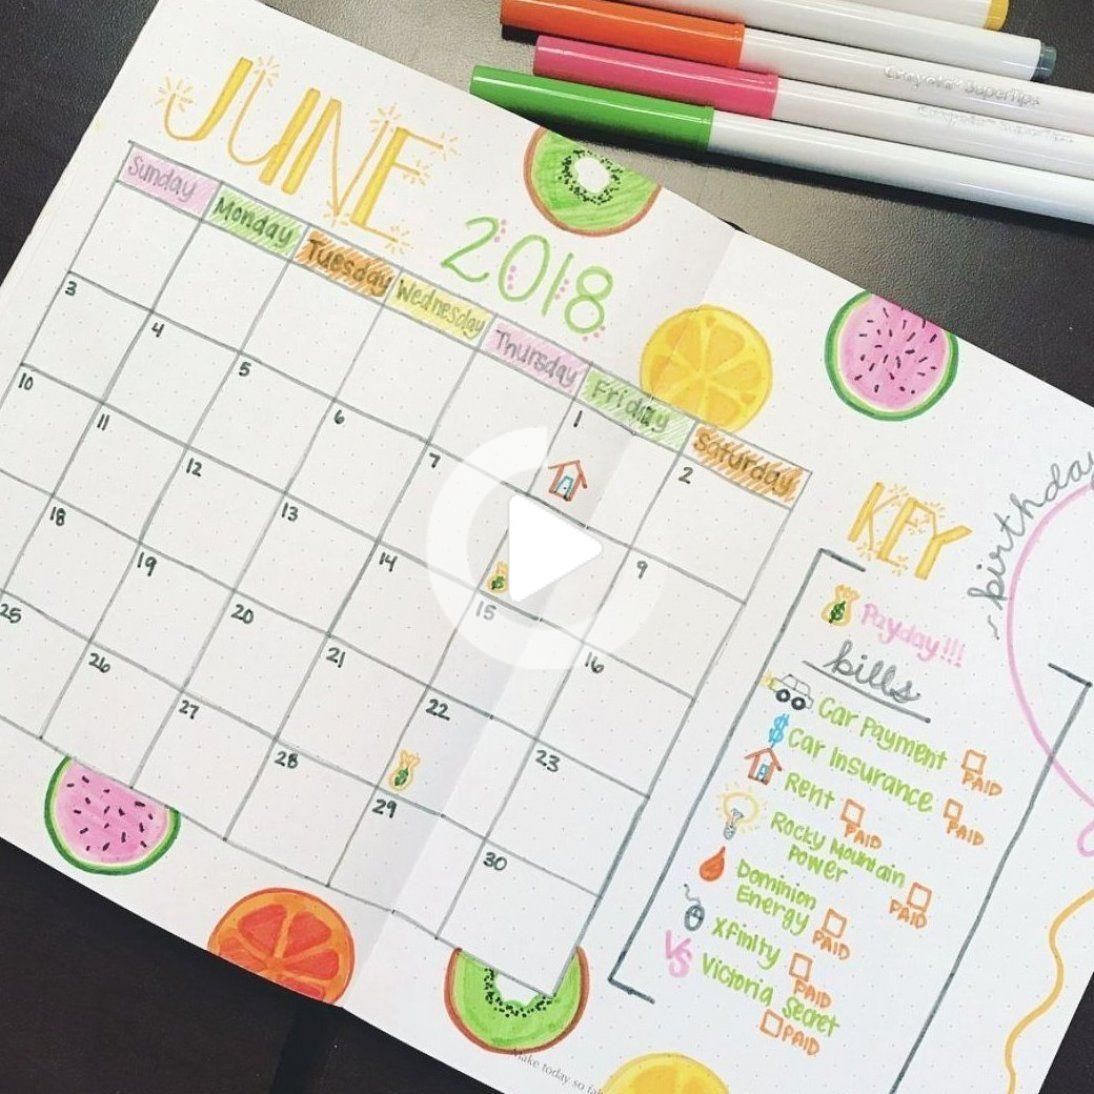 Pin On Self Care Bullet Journal